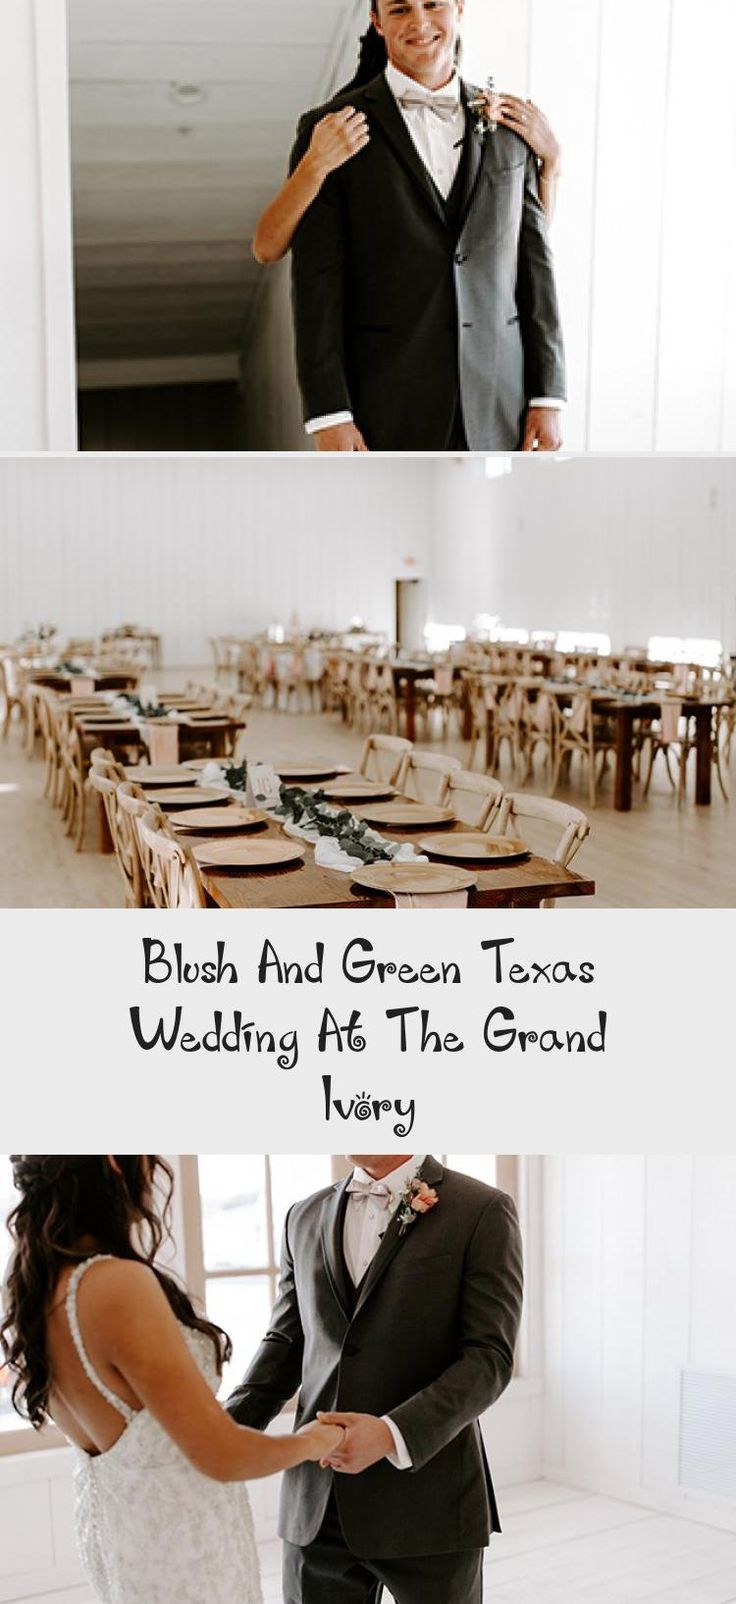 Blush and Green Texas Wedding at The Grand Ivory - Inspired By This #weddingplanner #TealBridesmaidDresses #BridesmaidDressesPurple #PeachBridesmaidDresses #GrayBridesmaidDresses #BurgundyBridesmaidDresses